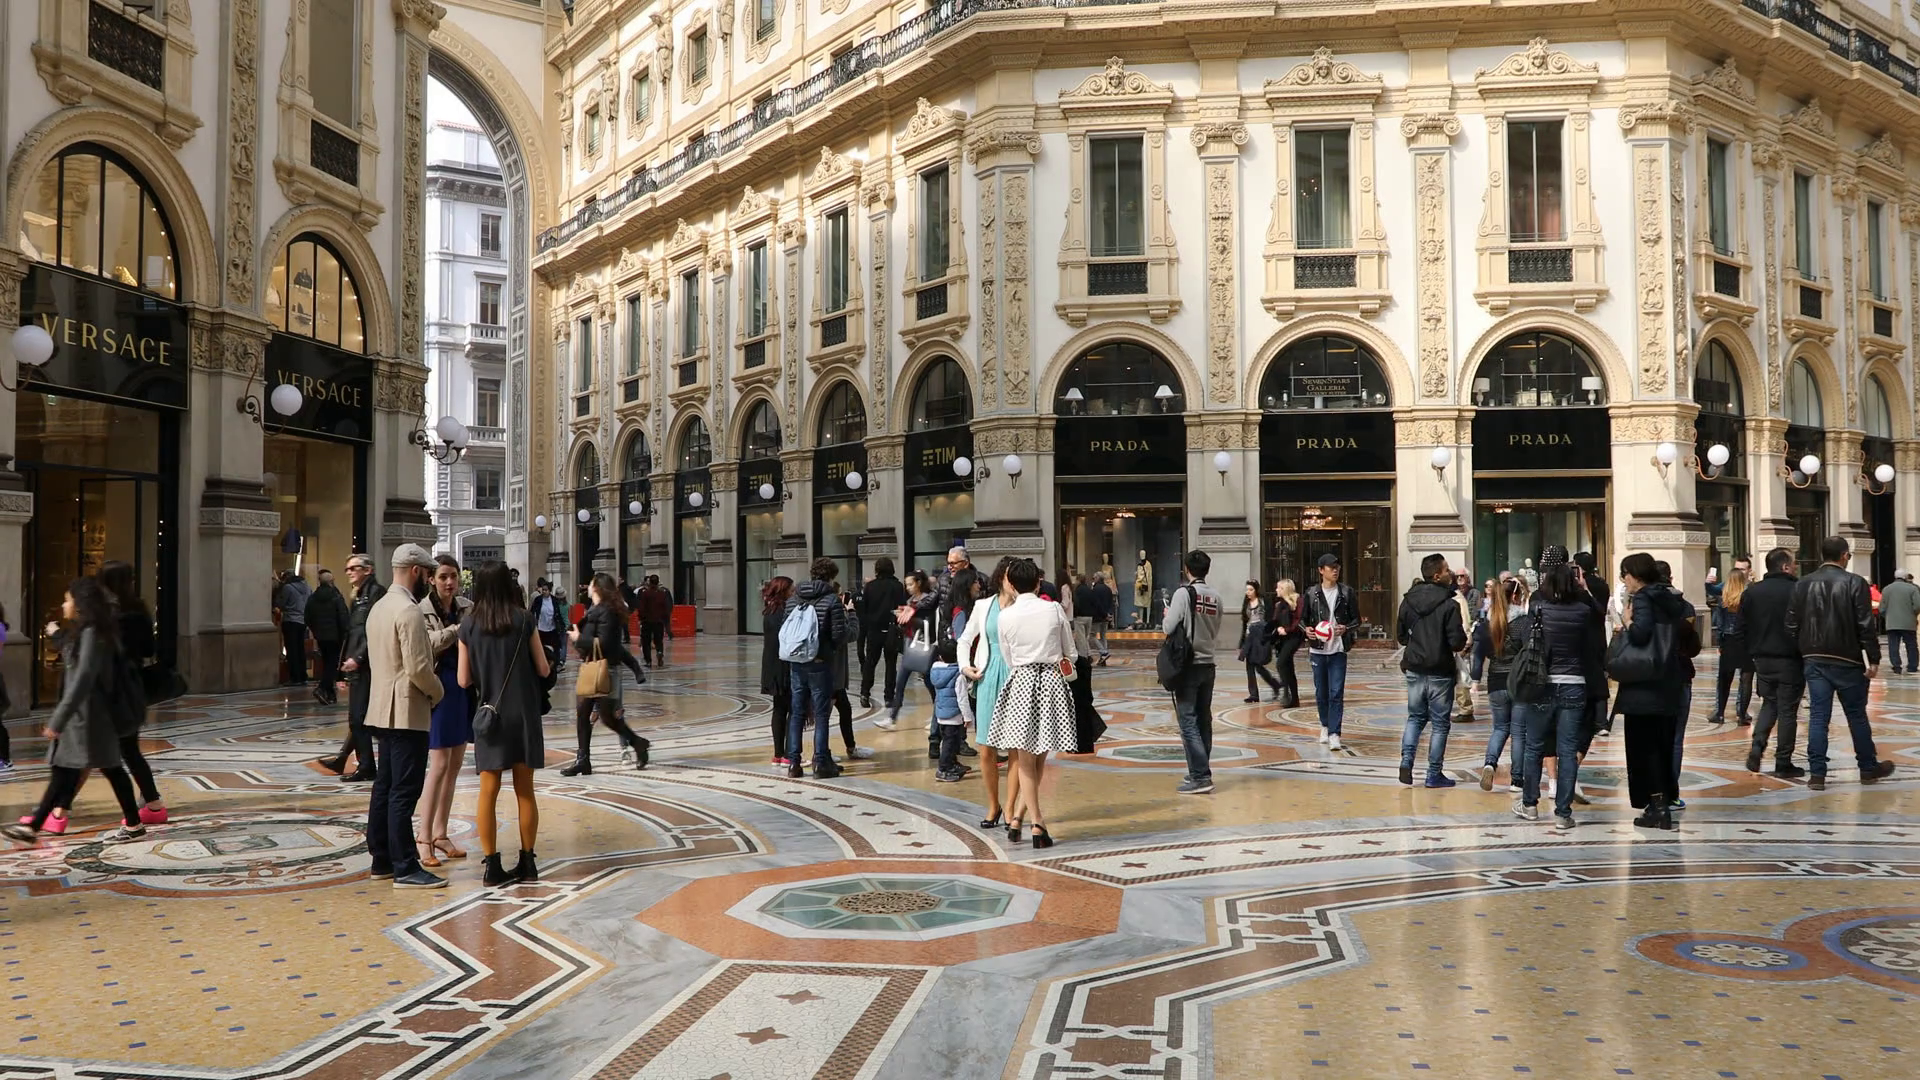 tourists-walking-for-shopping-inside-the-galleria-vittorio-emanuele-ii-gallery-in-piazza-duomo-square-famous-fashion-stores-like-prada-luxury-and-shopp